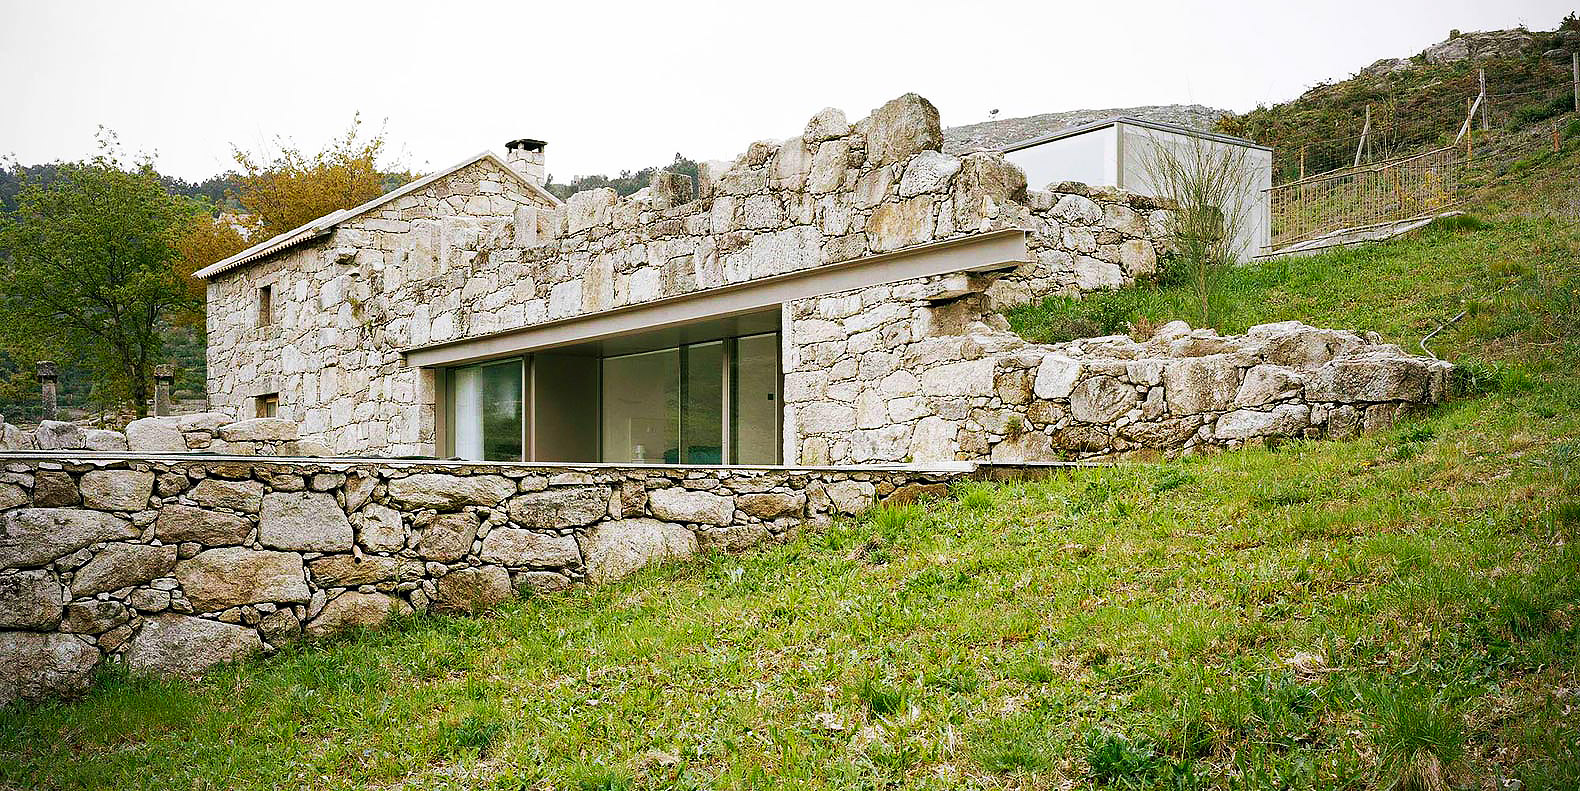 Stone house inhabitat green design innovation architecture green building - Wood and stone house plans a charming symbiosis ...